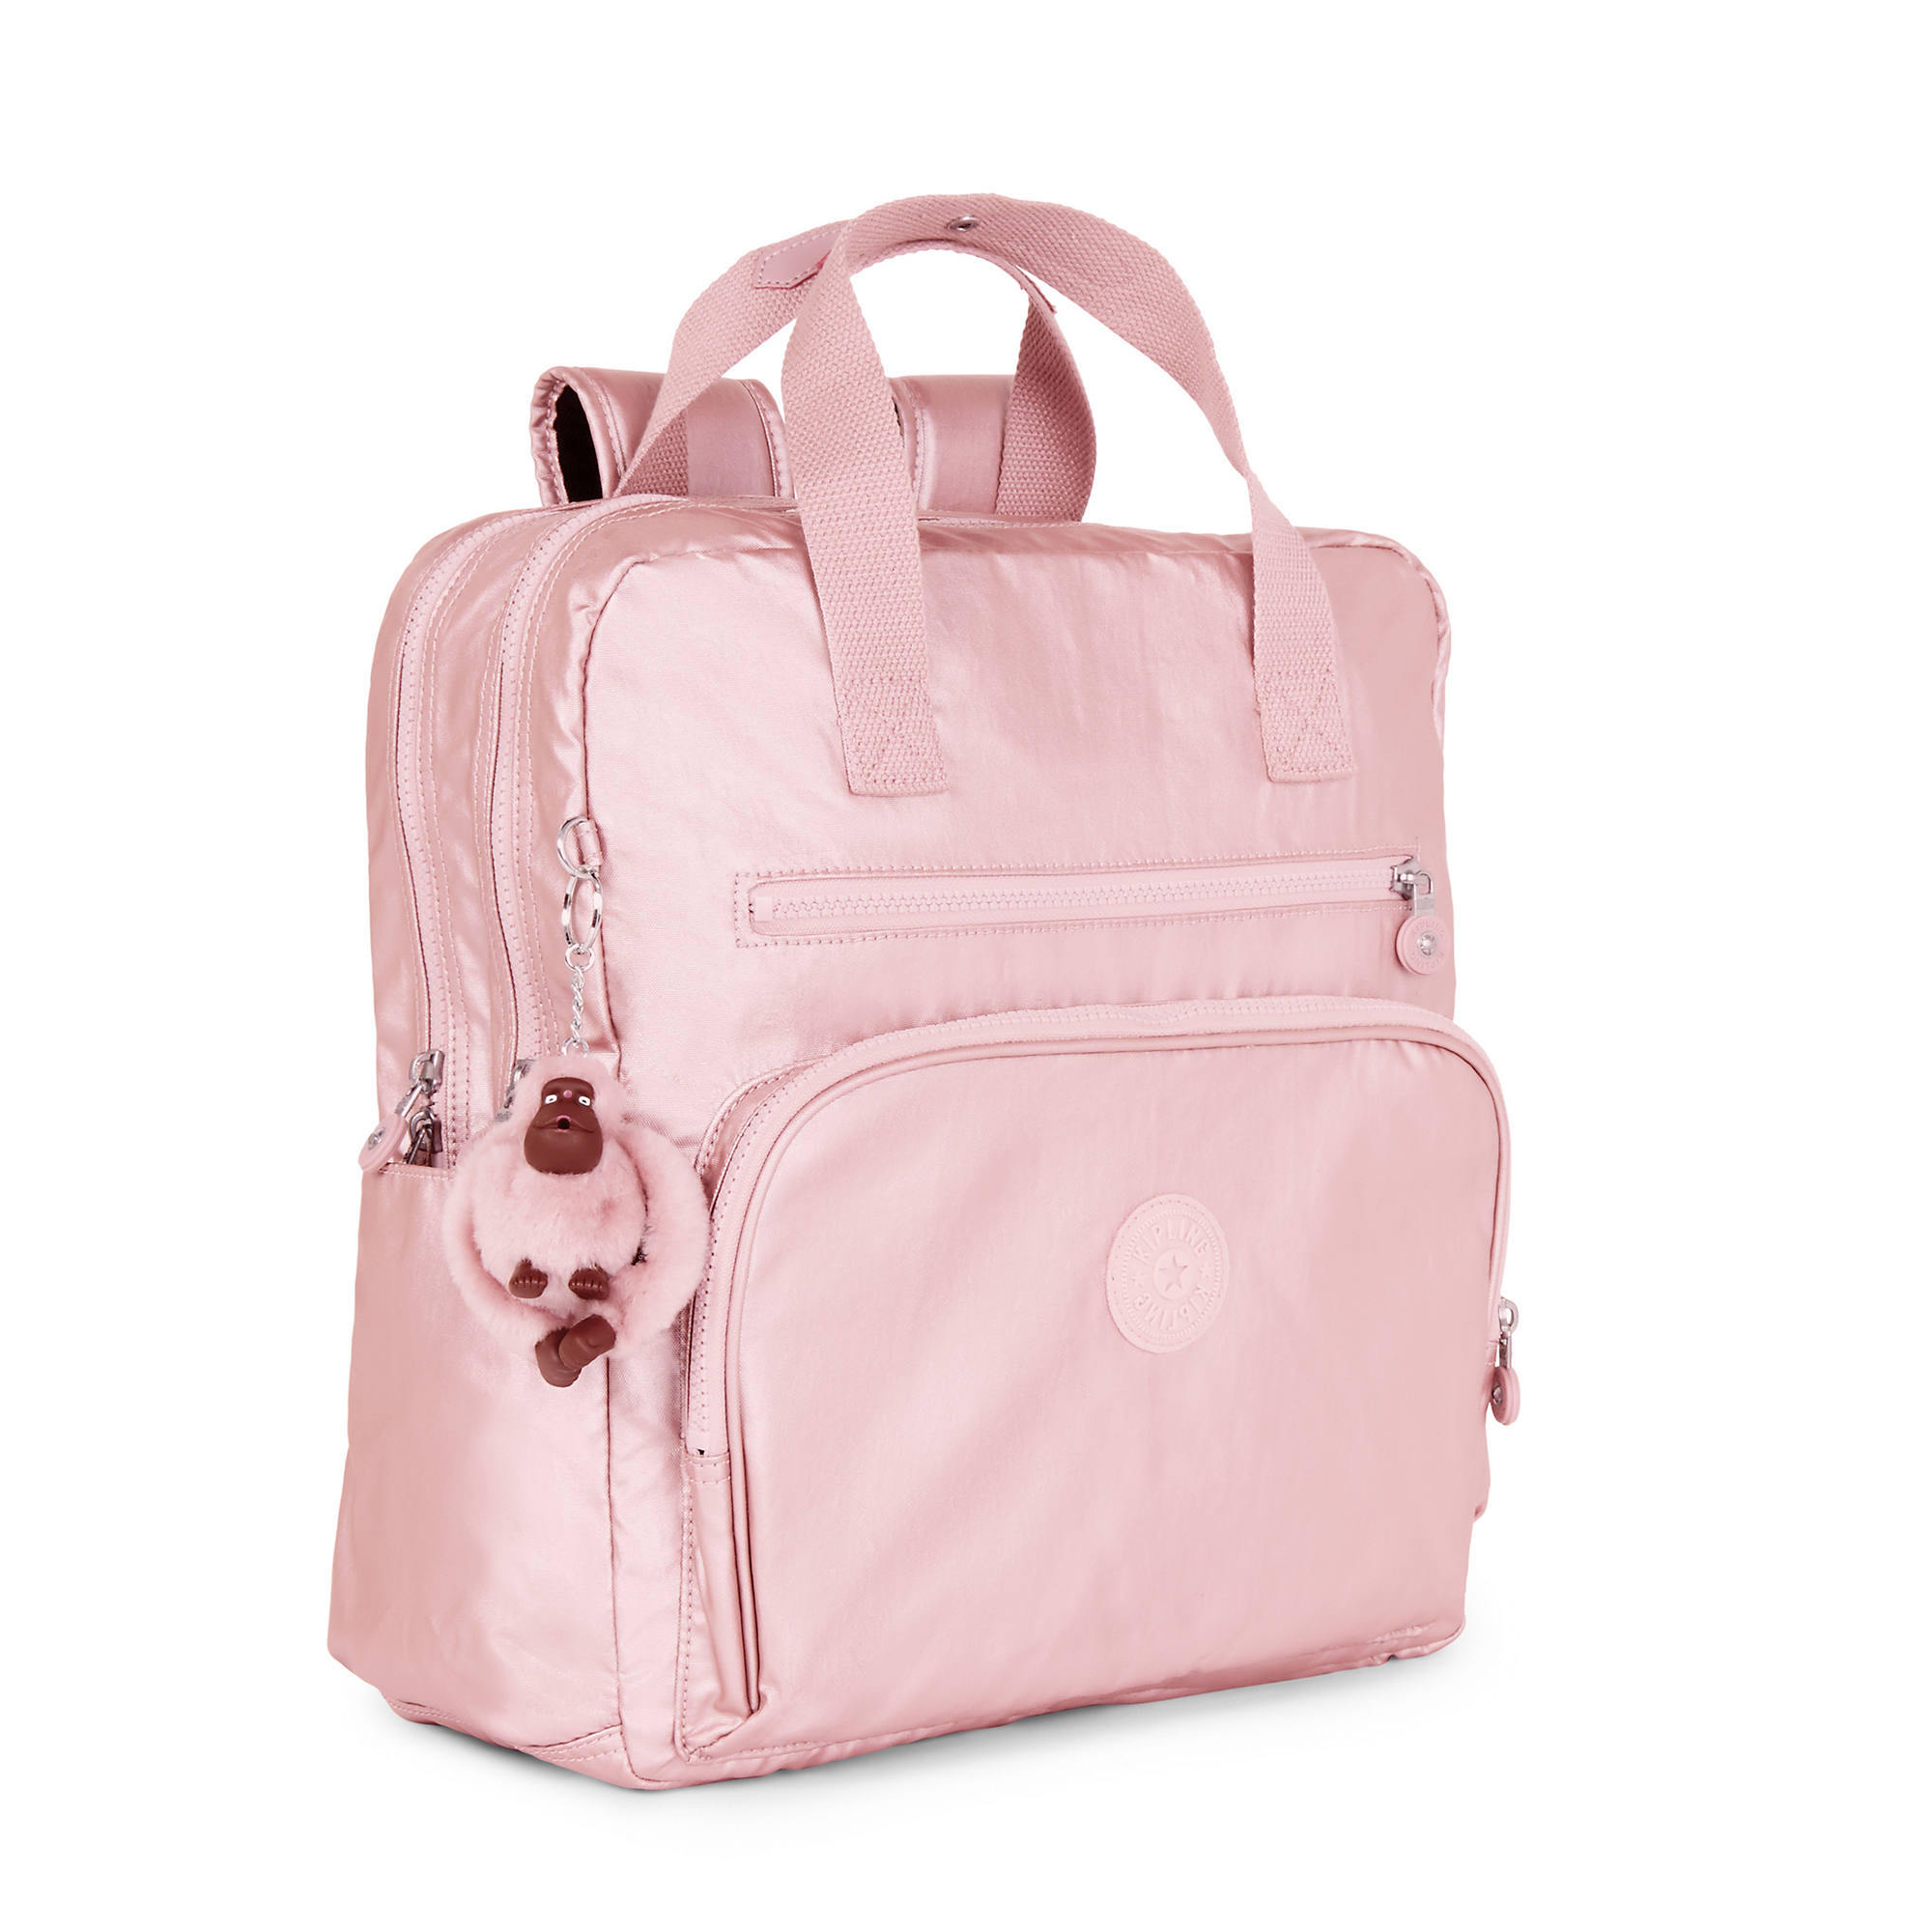 Audrie Metallic Diaper Bag Icy Rose Large